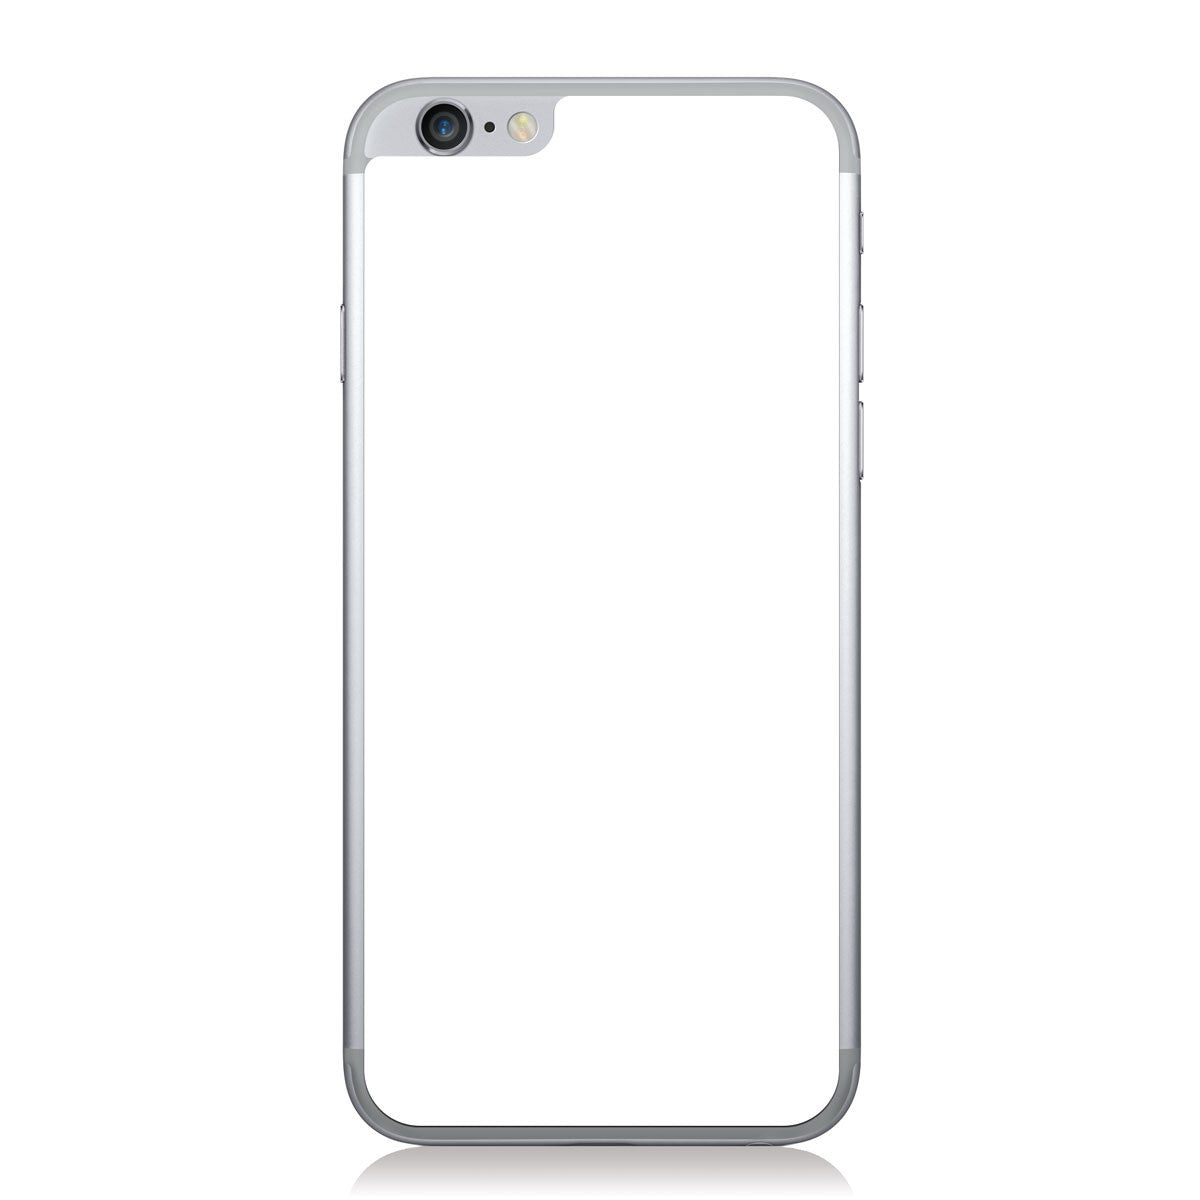 White iPhone 6/6s Leather Skin